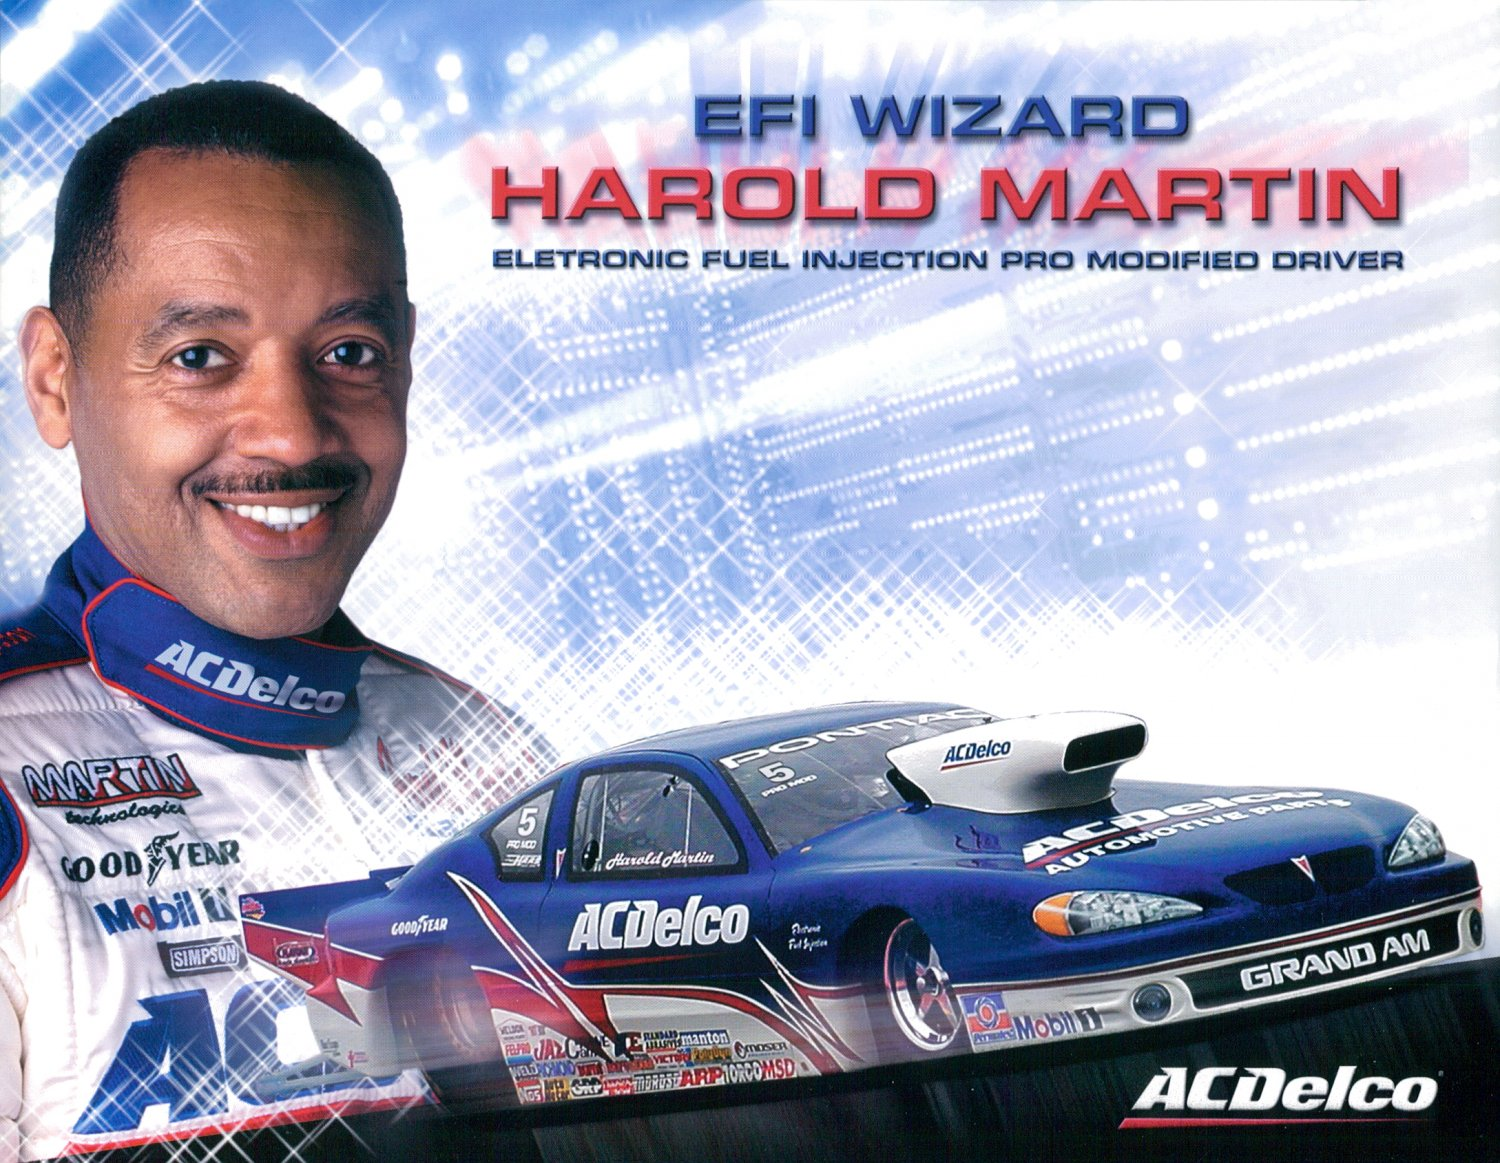 Harold Martin Racing Technologies Drag Race Car Wiring Systems